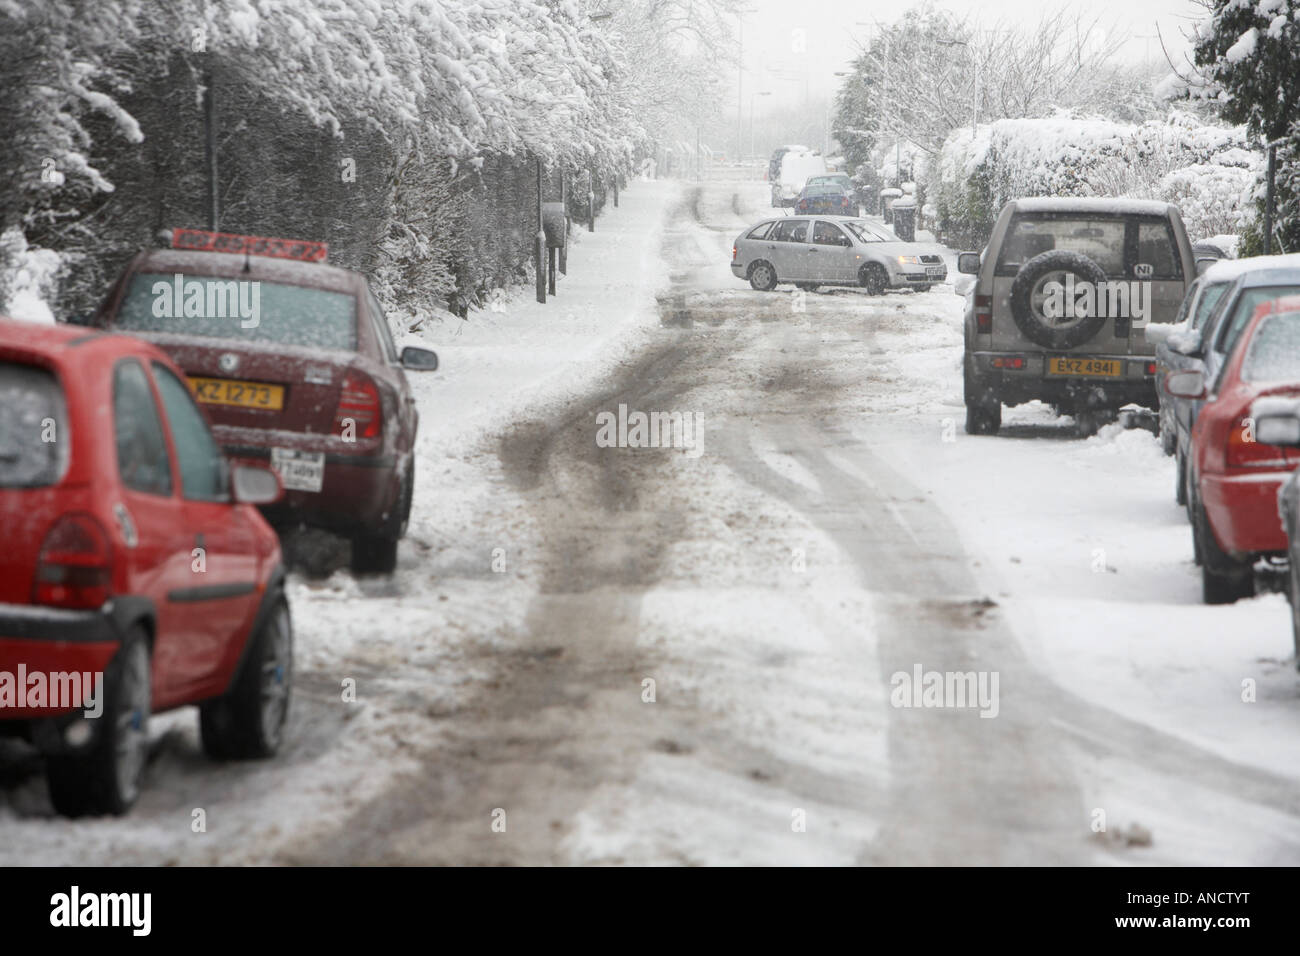 car spinning out of control on untreated icy road with other cars abandoned by the side of the road during snowstorm - Stock Image